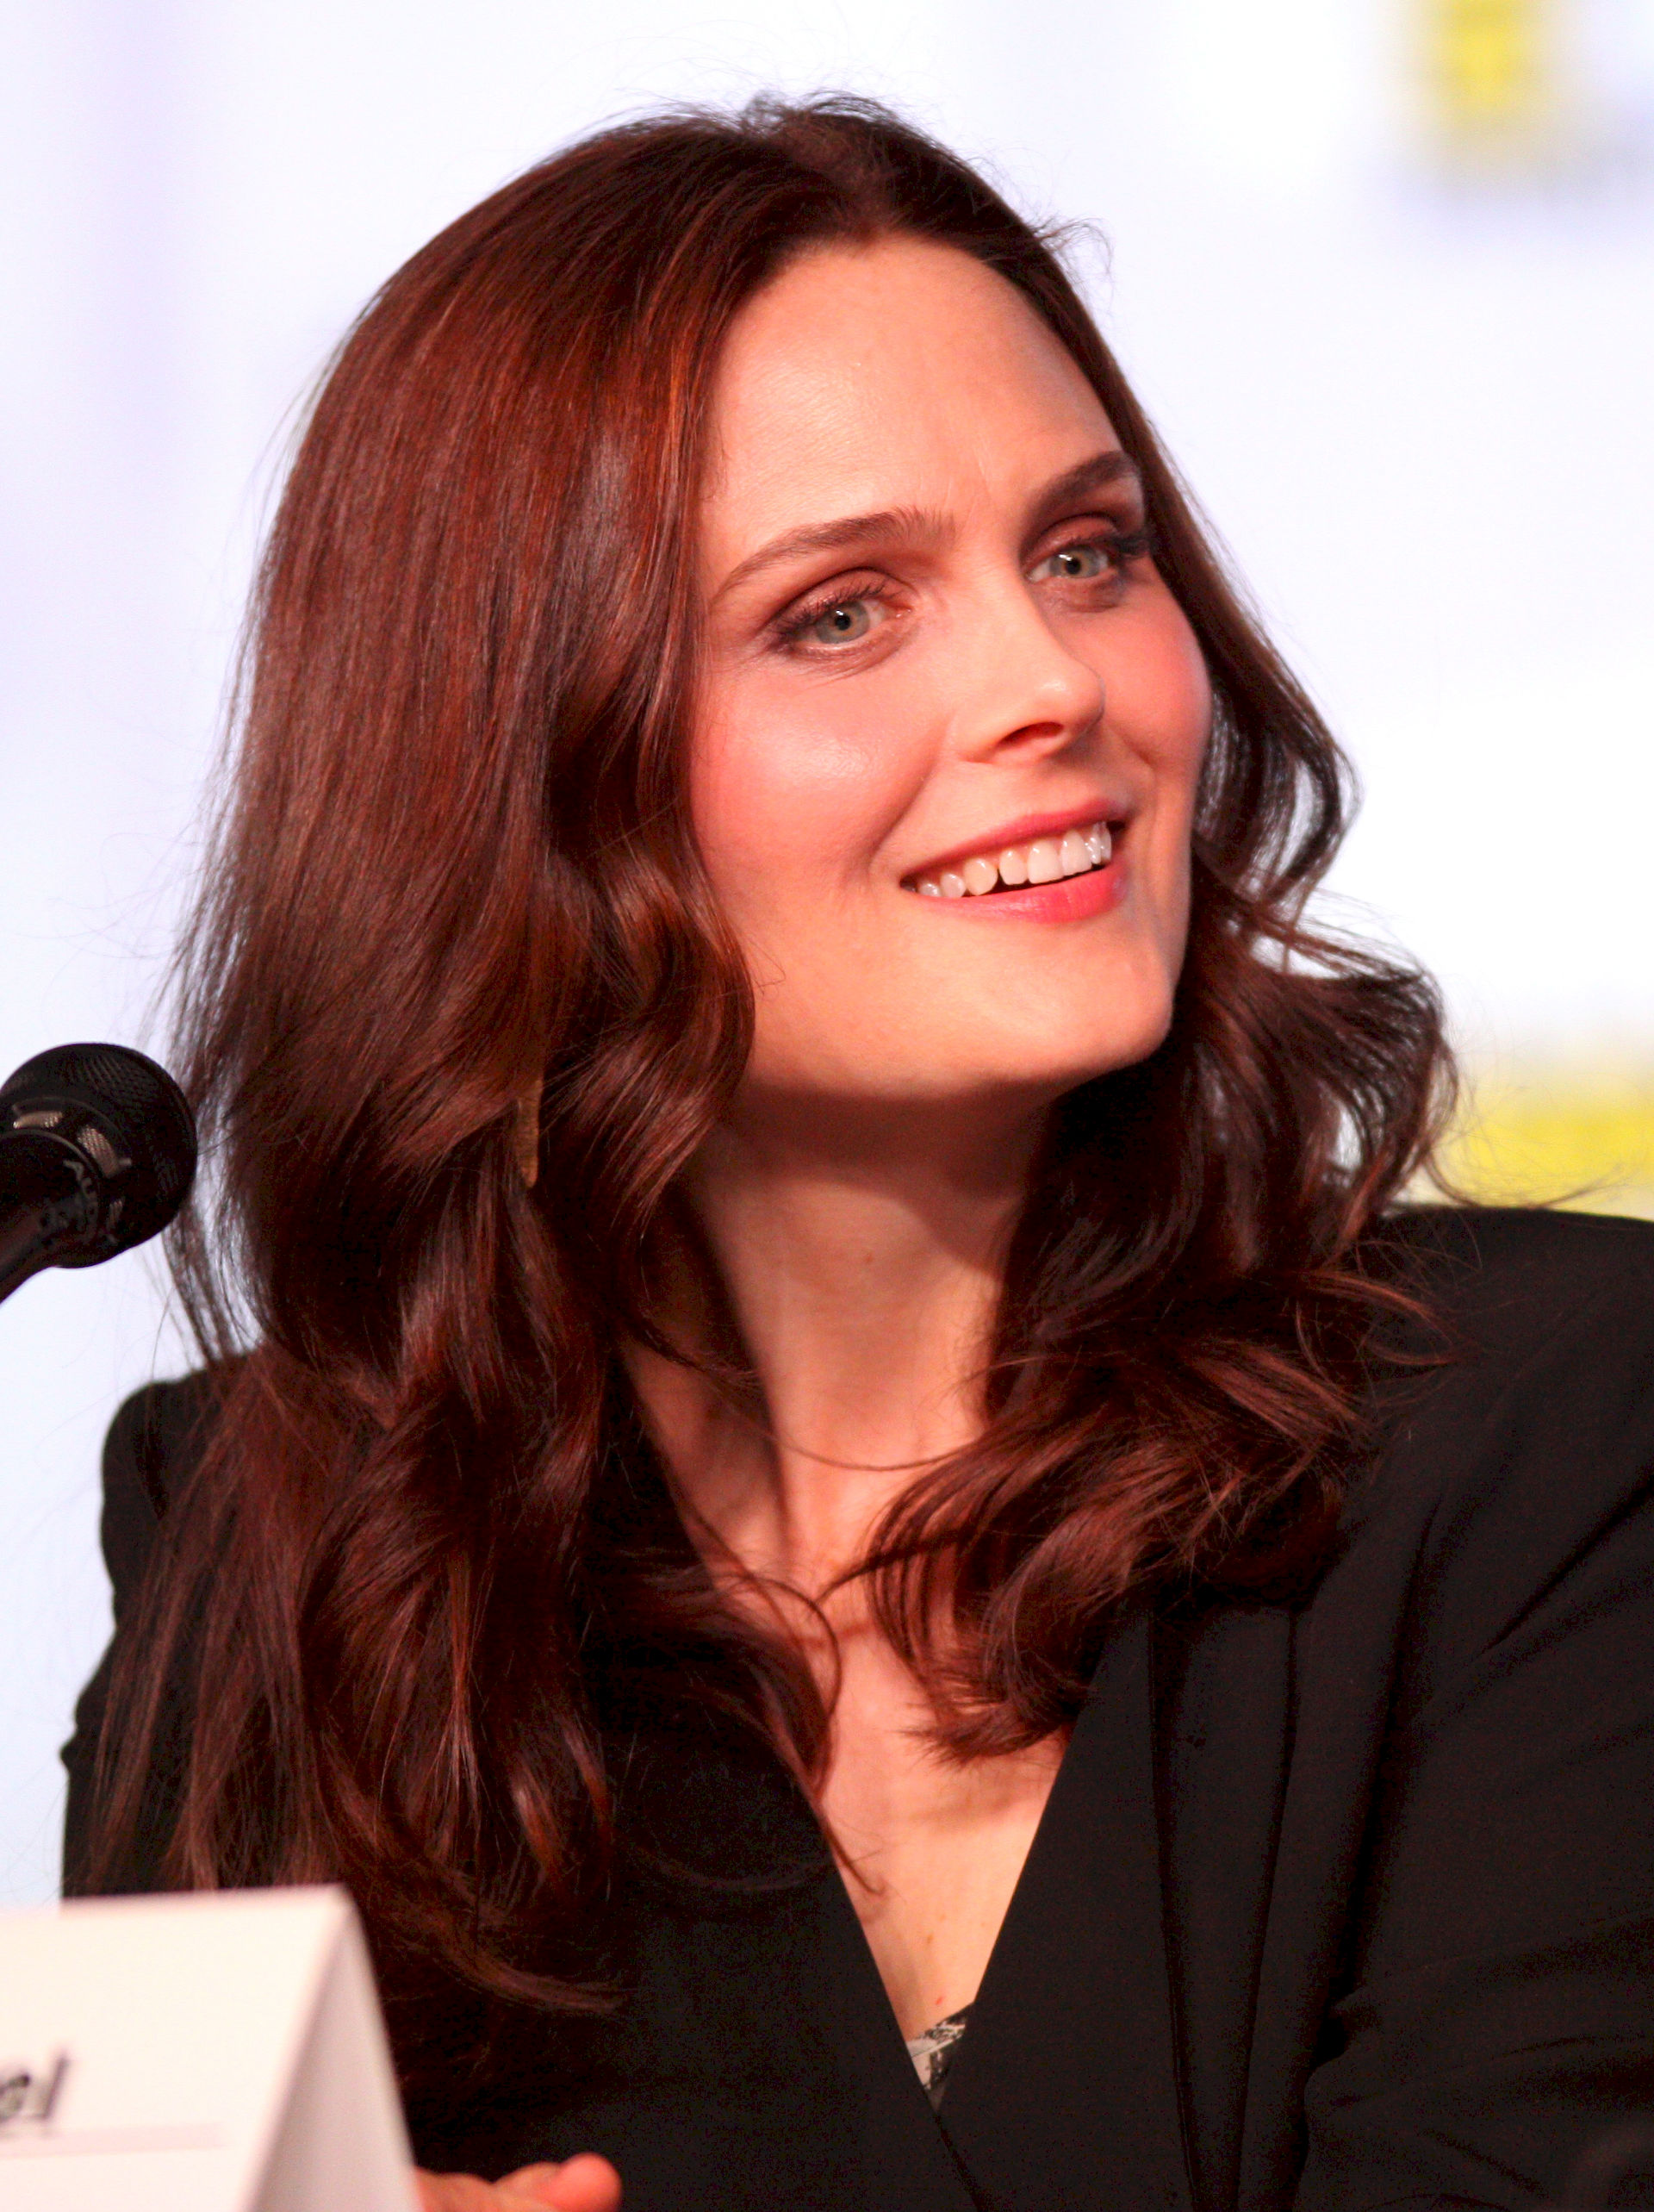 Photo of Emily Deschanel: American actress, television producer, and film producer